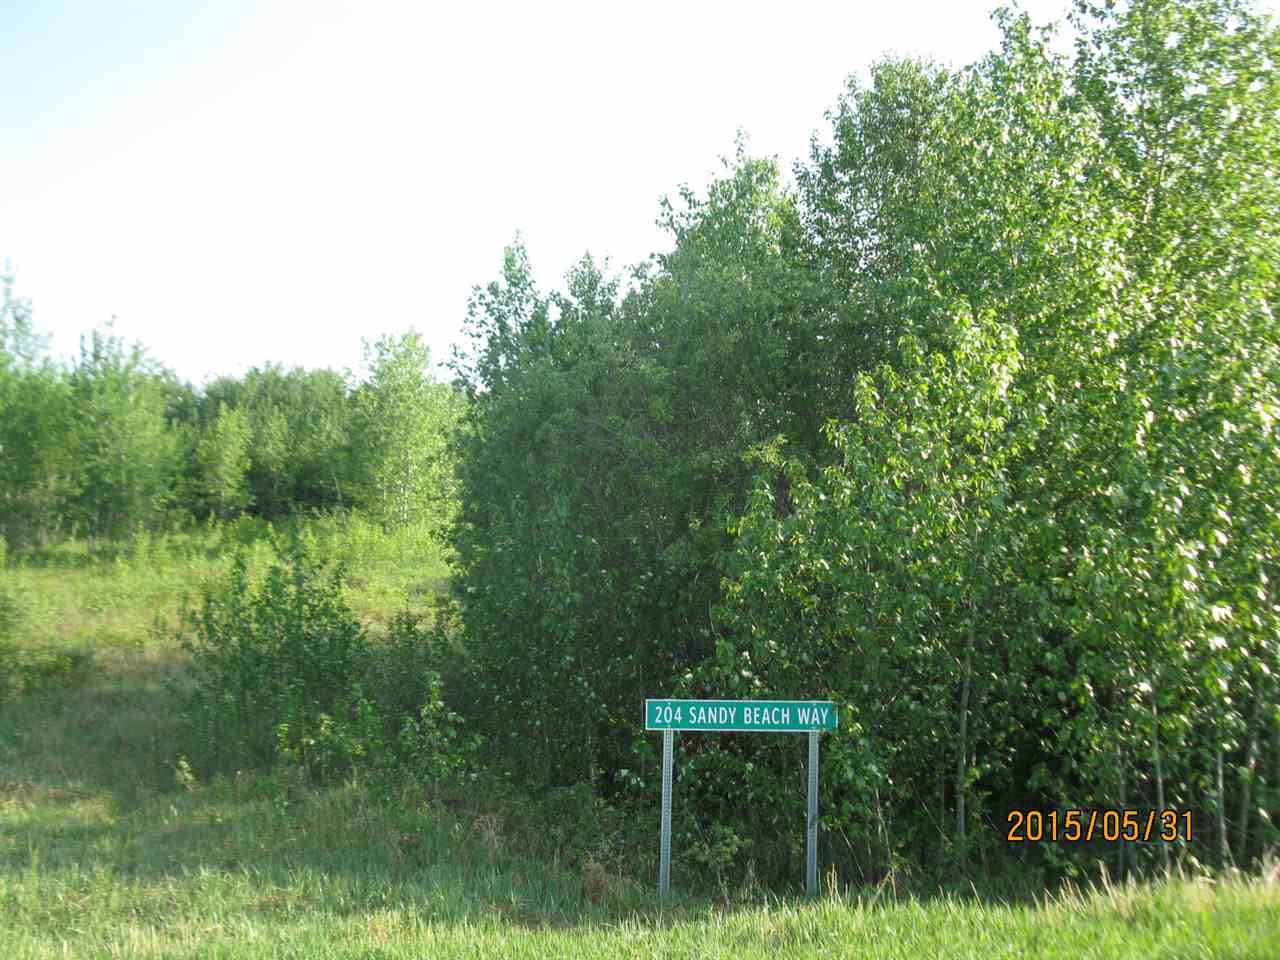 Main Photo: 204 Sandy Beach Way: Rural Two Hills County Rural Land/Vacant Lot for sale : MLS®# E4127263